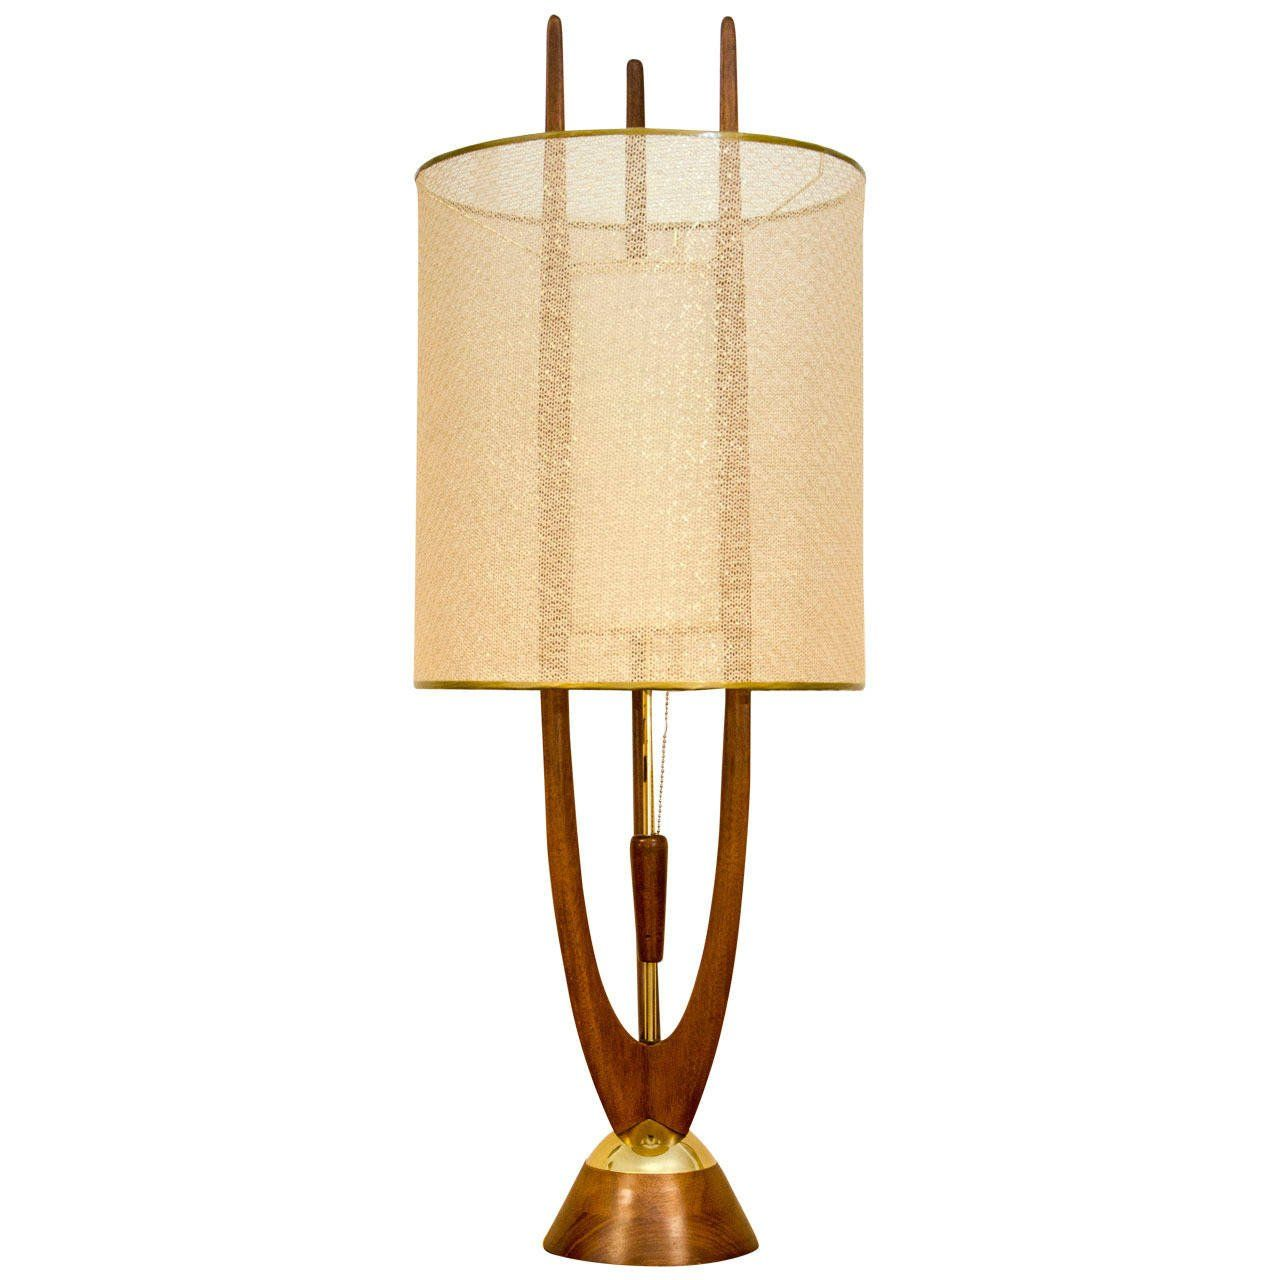 modern lamp design table lamps luxury items mid brass arm swing desk teak vintage wood of arteluce and century